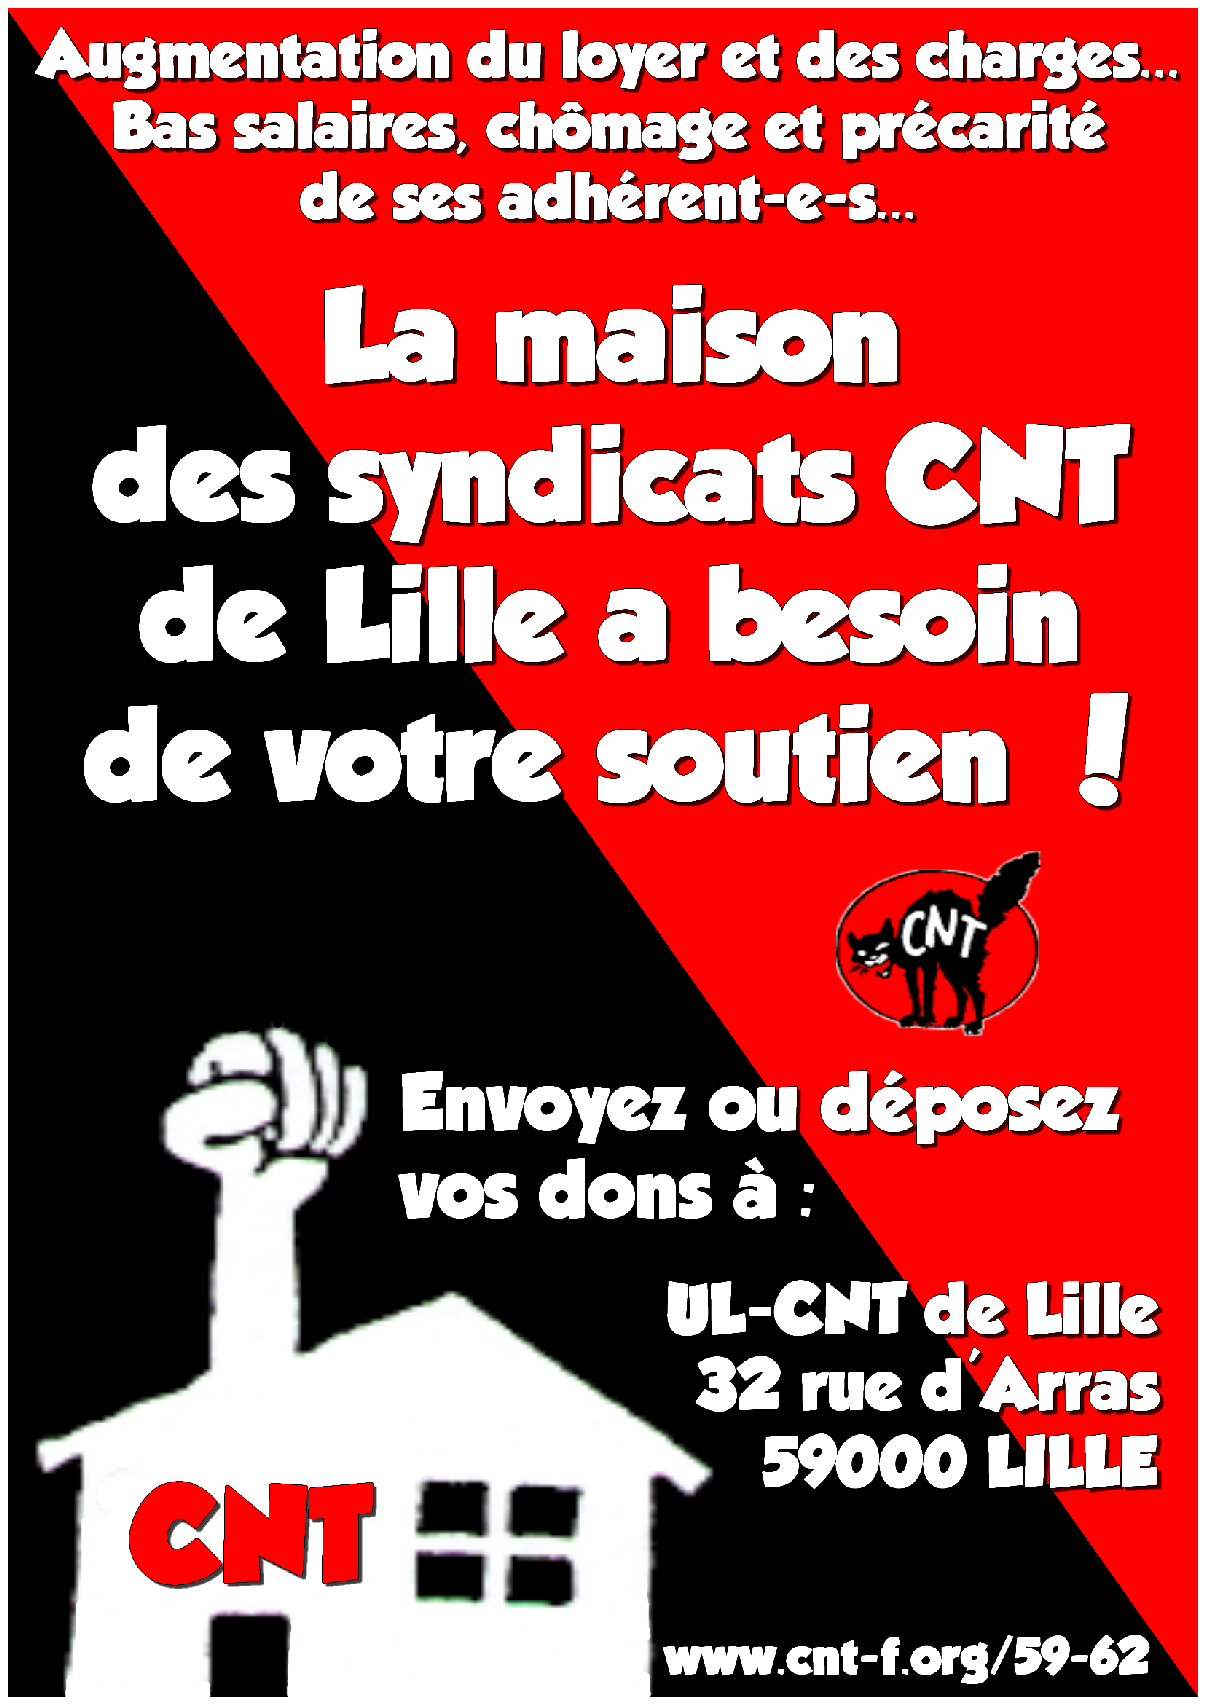 la-maison-des-syndicats-cnt-de-lille-a-besoin-de-votre-soutien-1205x1704